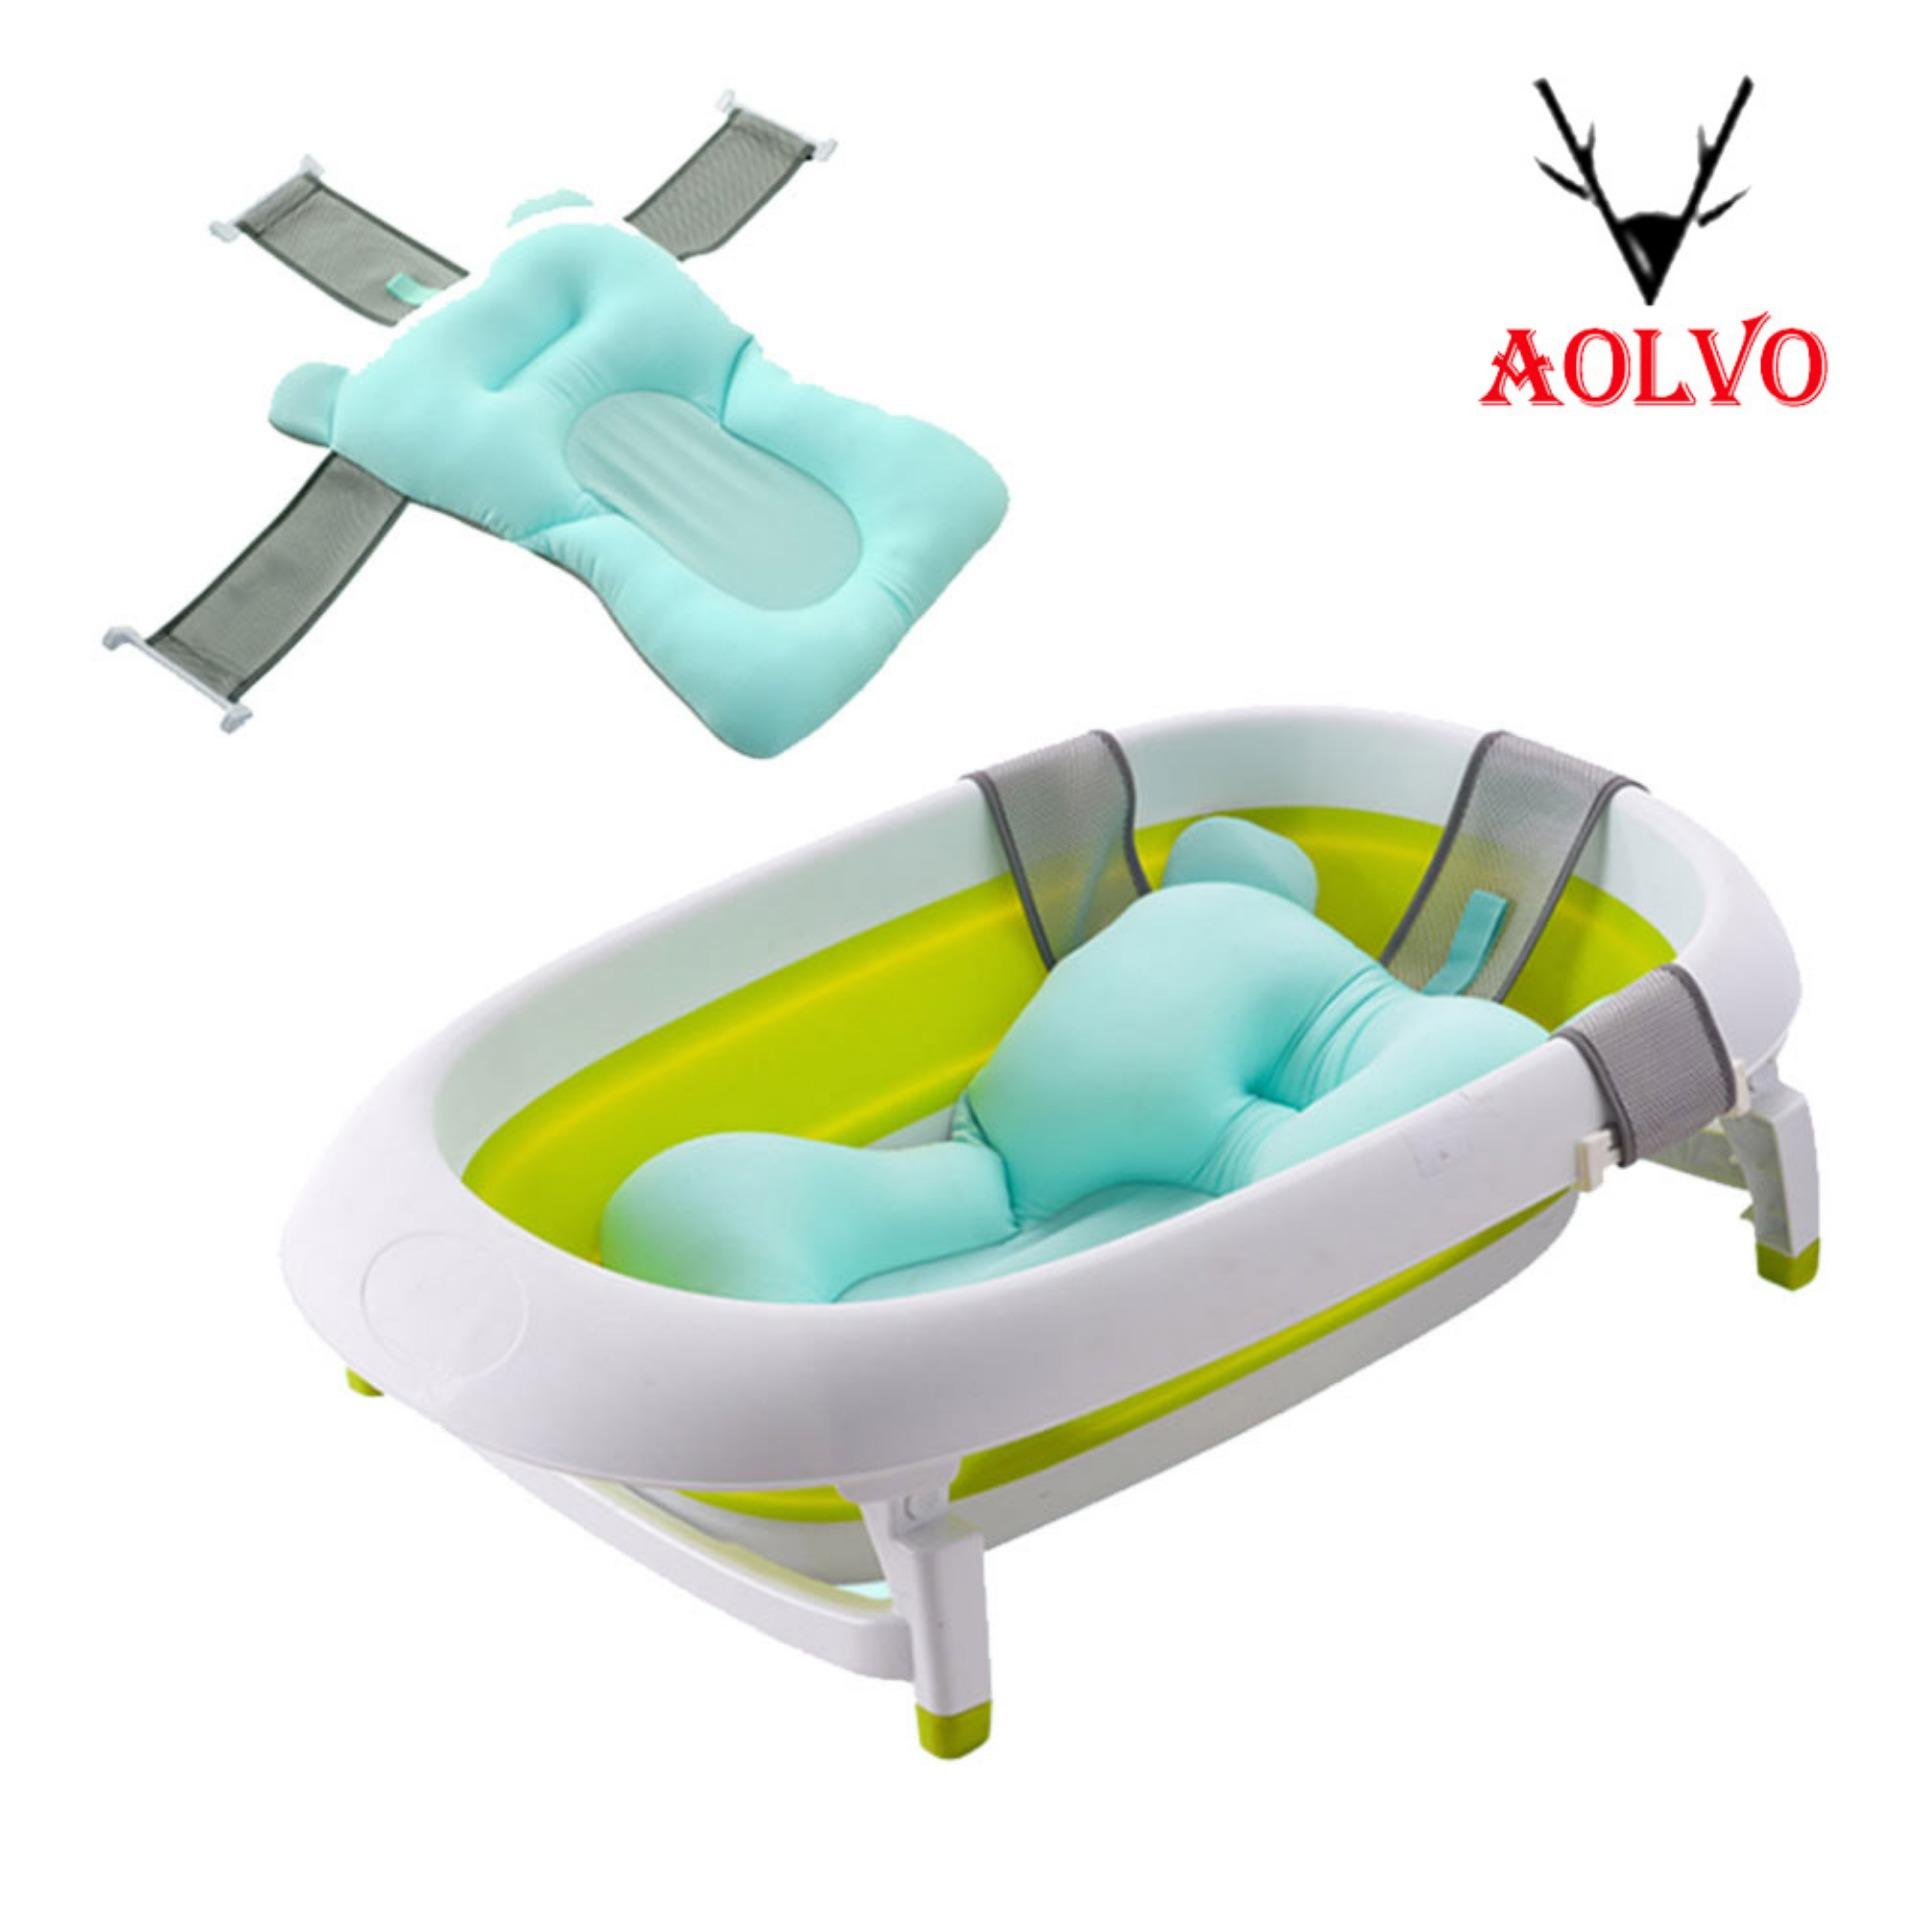 Baby Bath Tubs For Sale Bath Tub Accessories For Babies Online